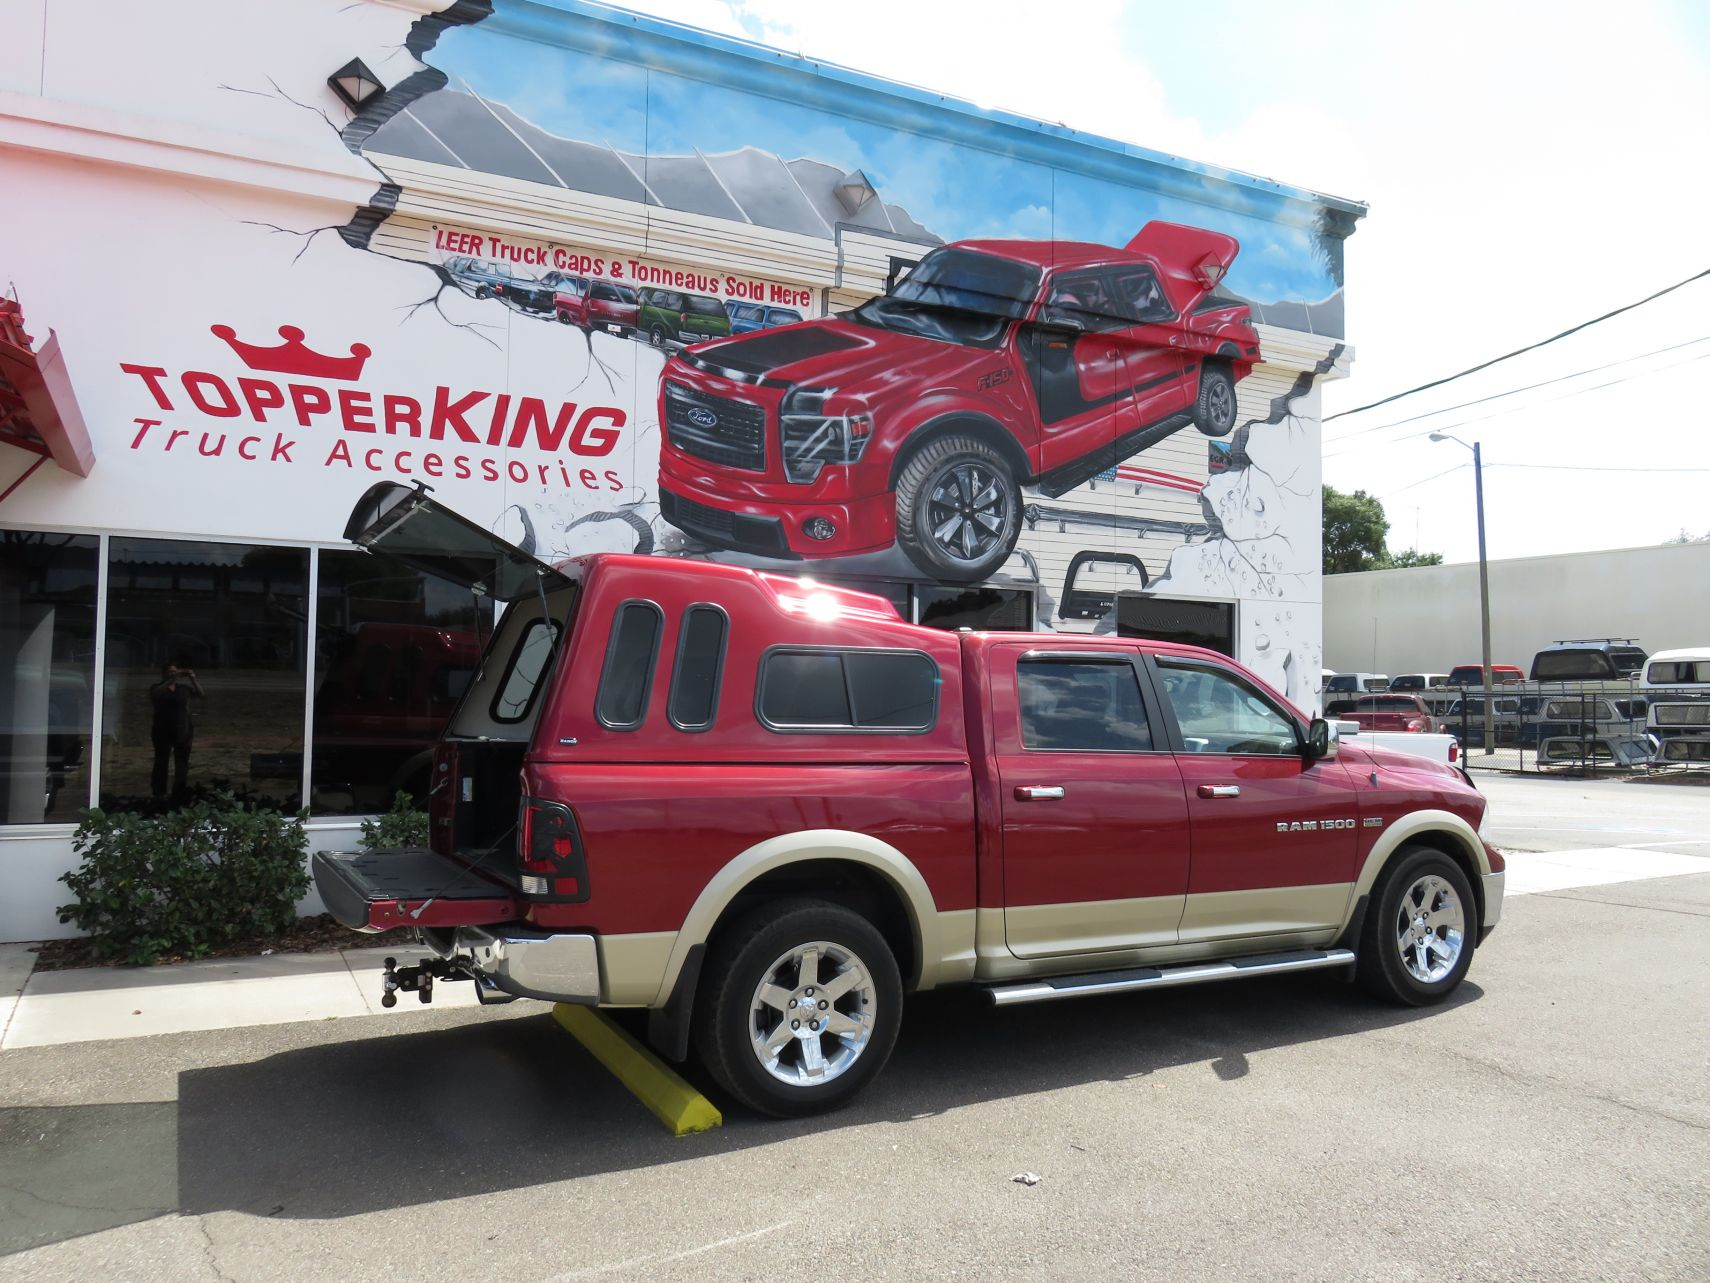 Dodge RAM 1500 Ranch Supreme topper and a Pendaliner Bedliner by TopperKING in Brandon, FL 813-689-2449 Call today to start on your truck!